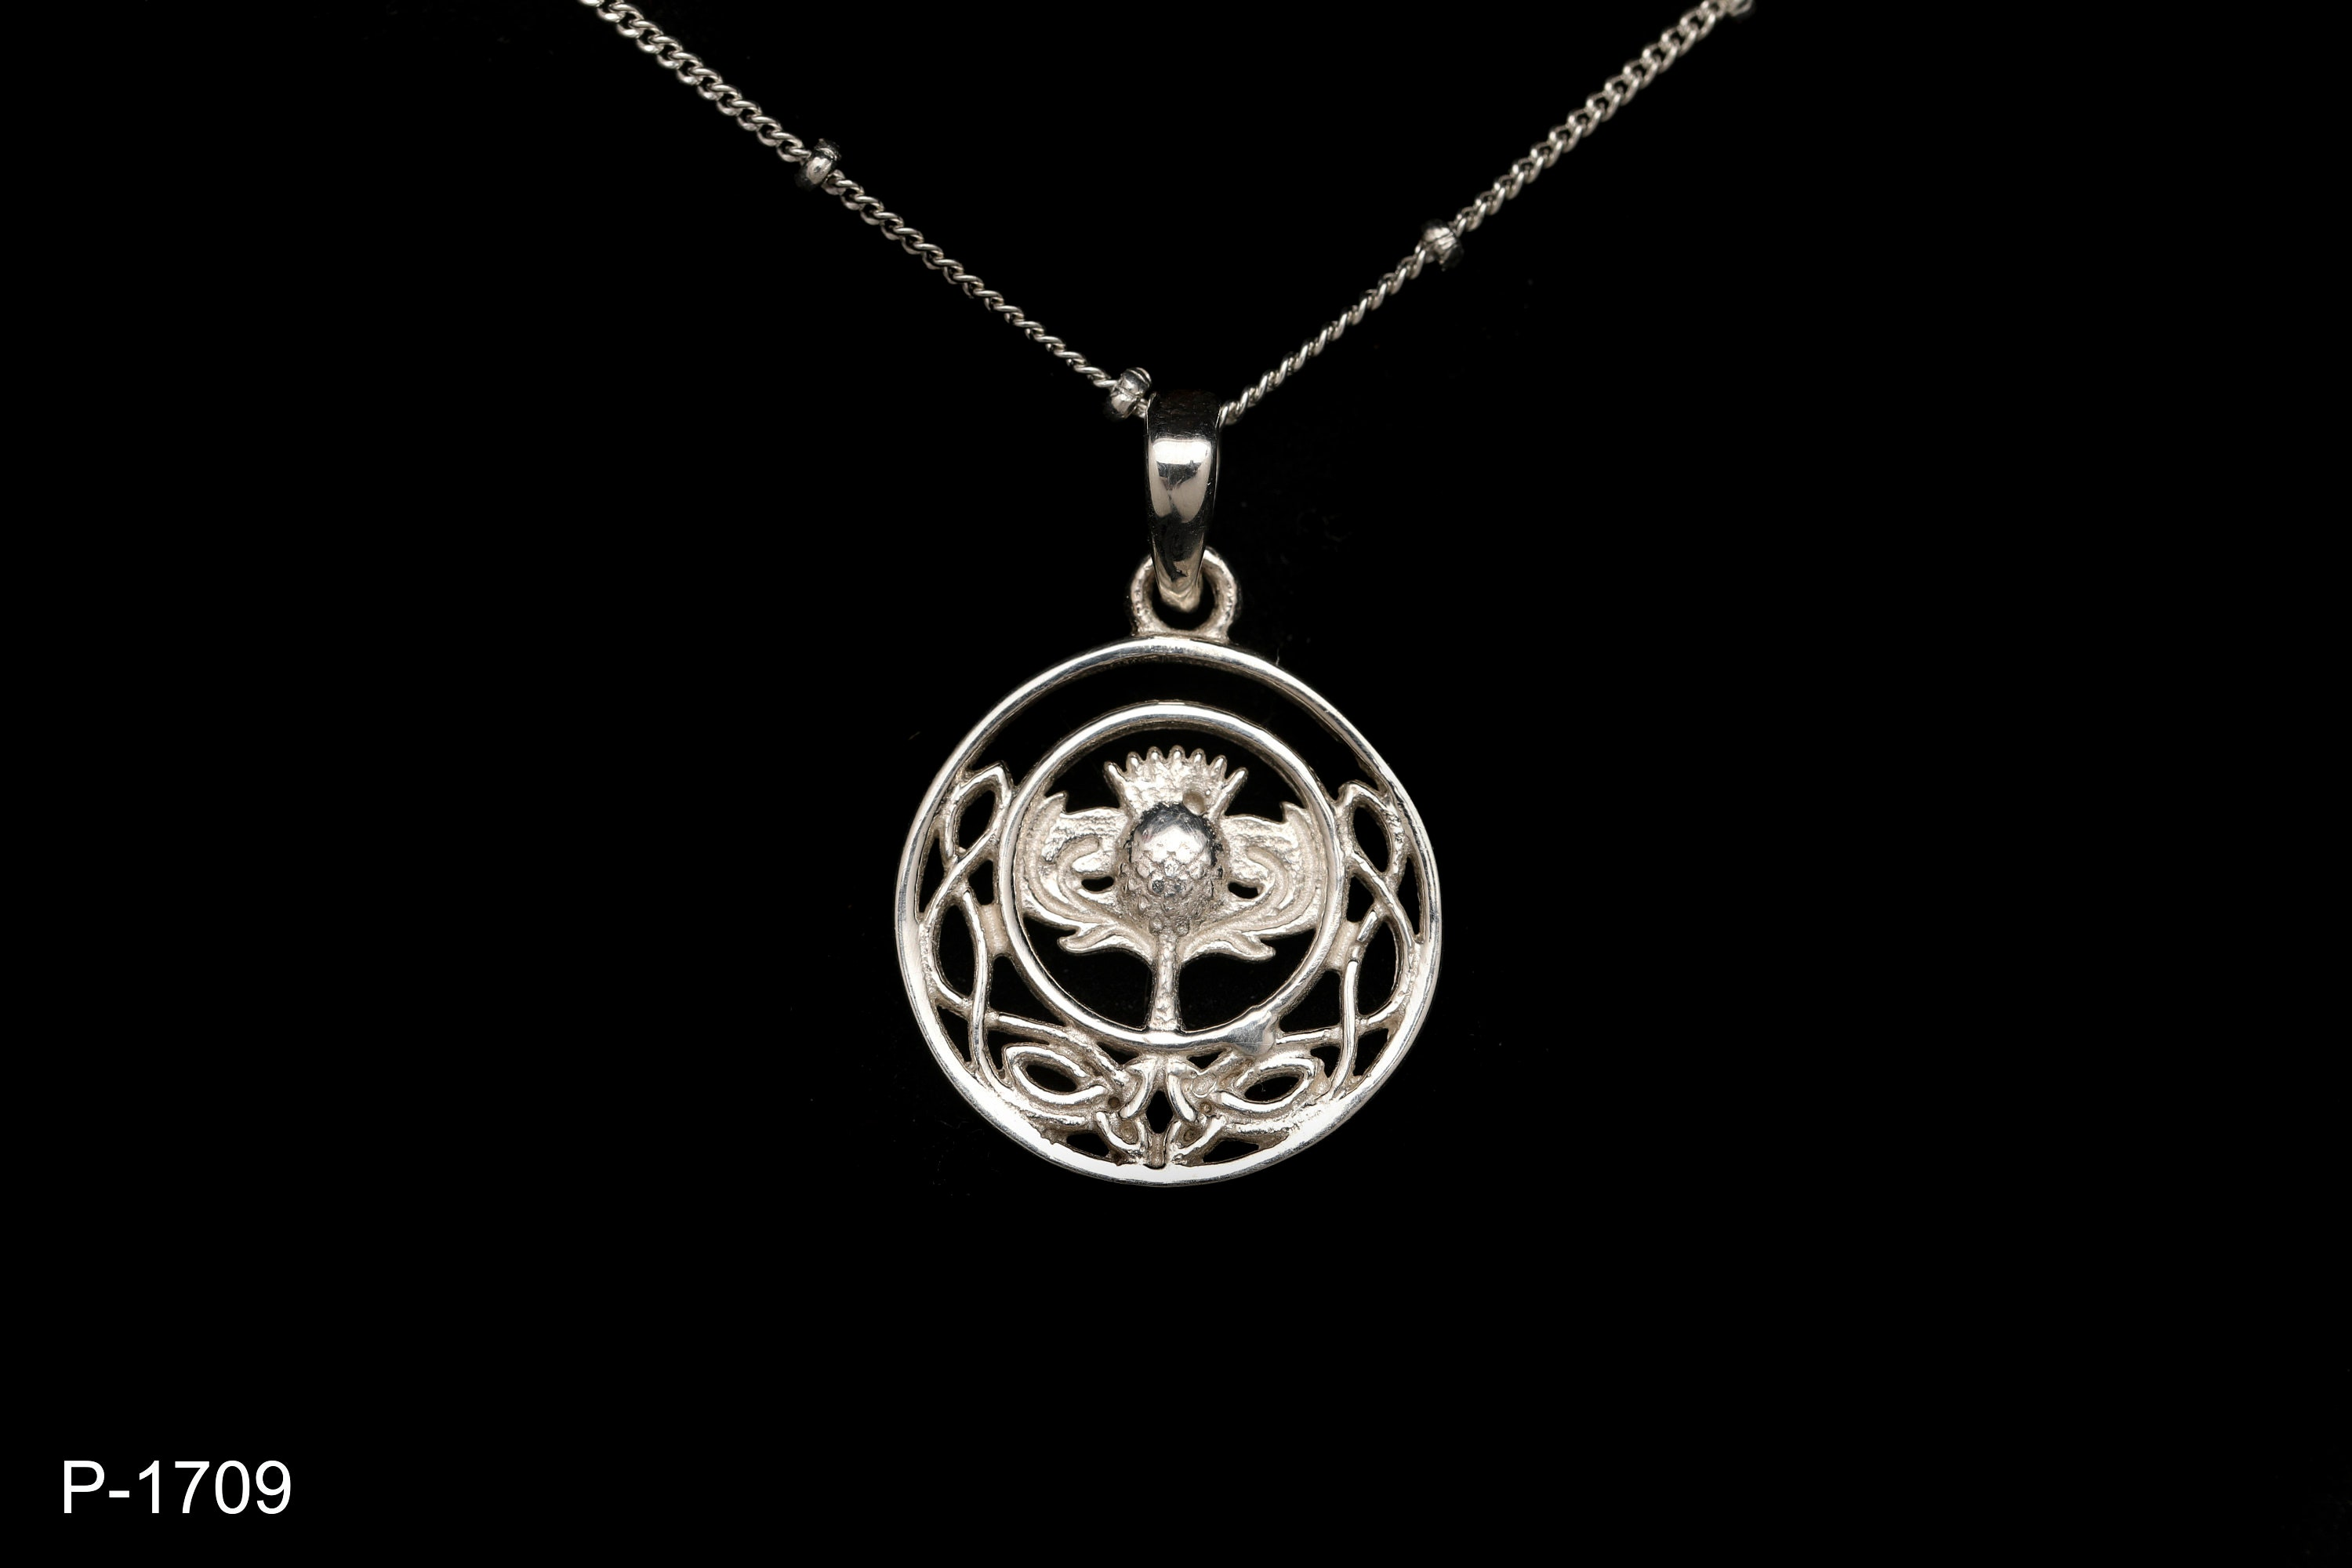 Scottish Thistle Pendant   Sterling Silver  Celtic Jewellery   Scottish Jewellery   Scotland   Edinburgh   Handmade, used for sale